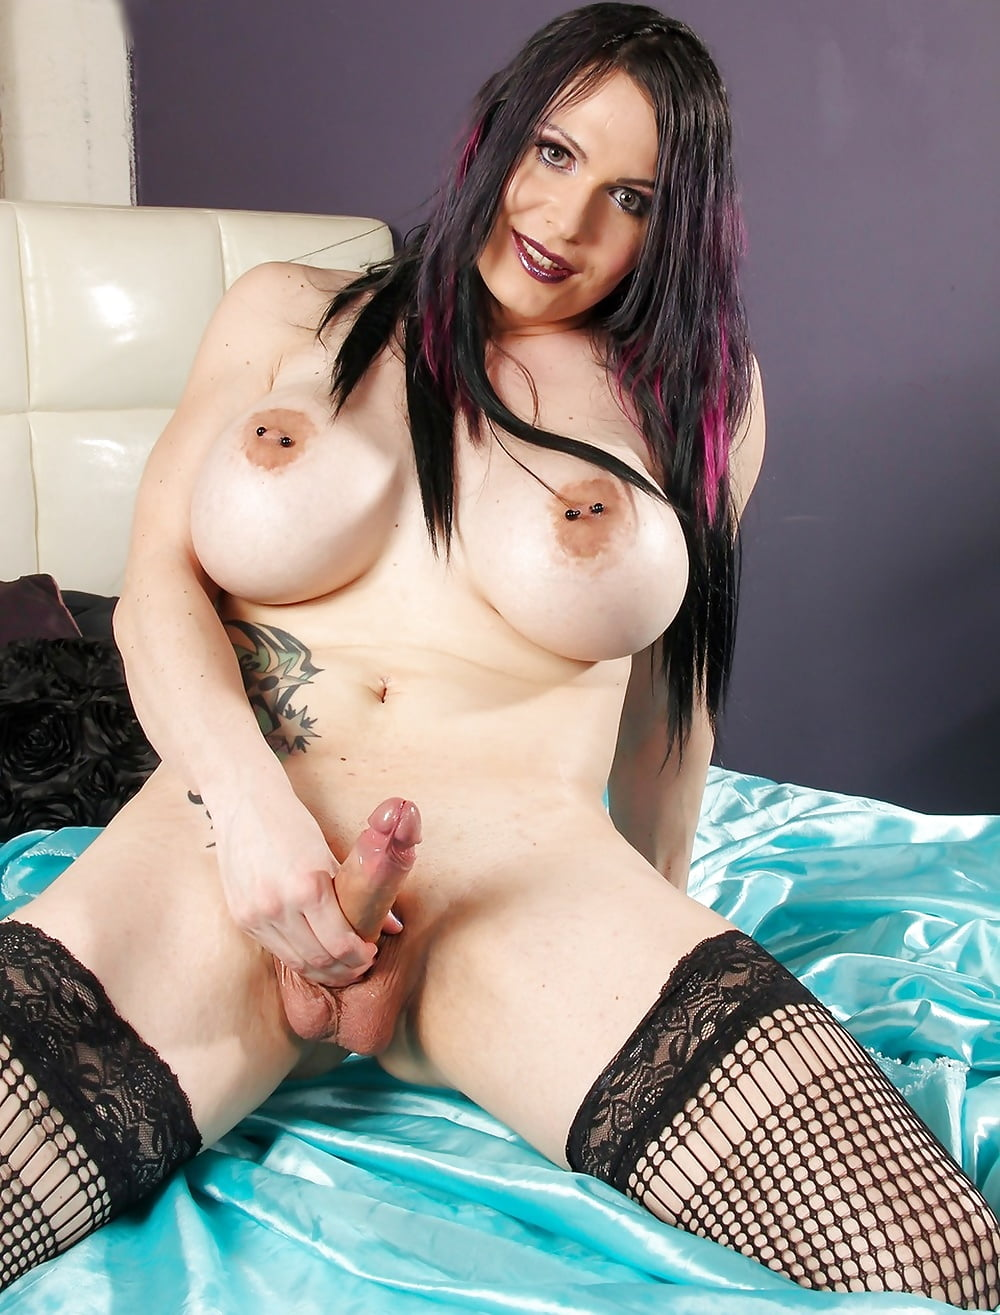 Shemale With Big Boobs